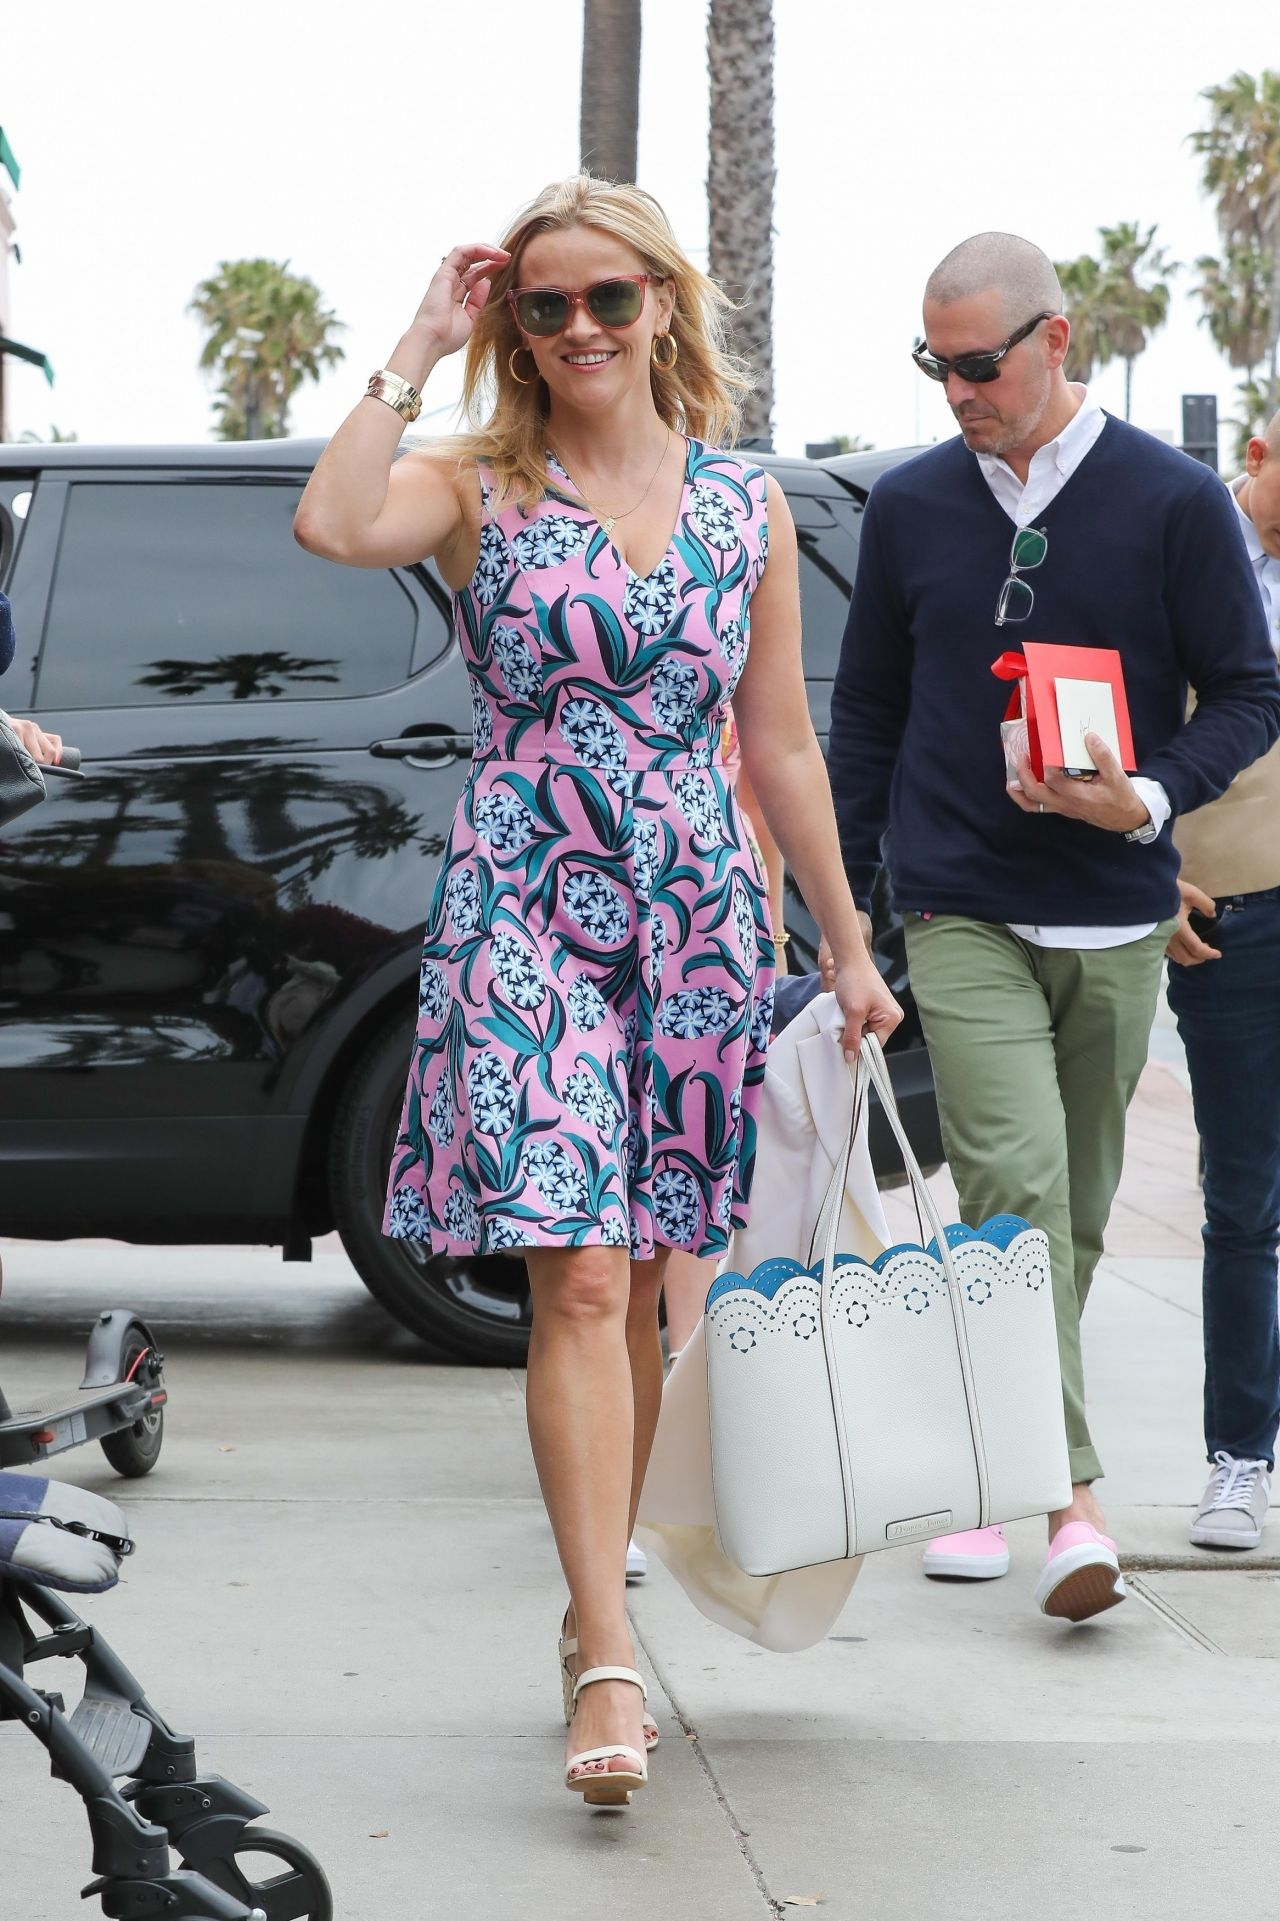 http://celebmafia.com/wp-content/uploads/2018/05/reese-witherspoon-and-ava-phillippe-mother-s-day-brunch-at-ivy-at-the-shore-in-santa-monica-05-13-2018-3.jpg